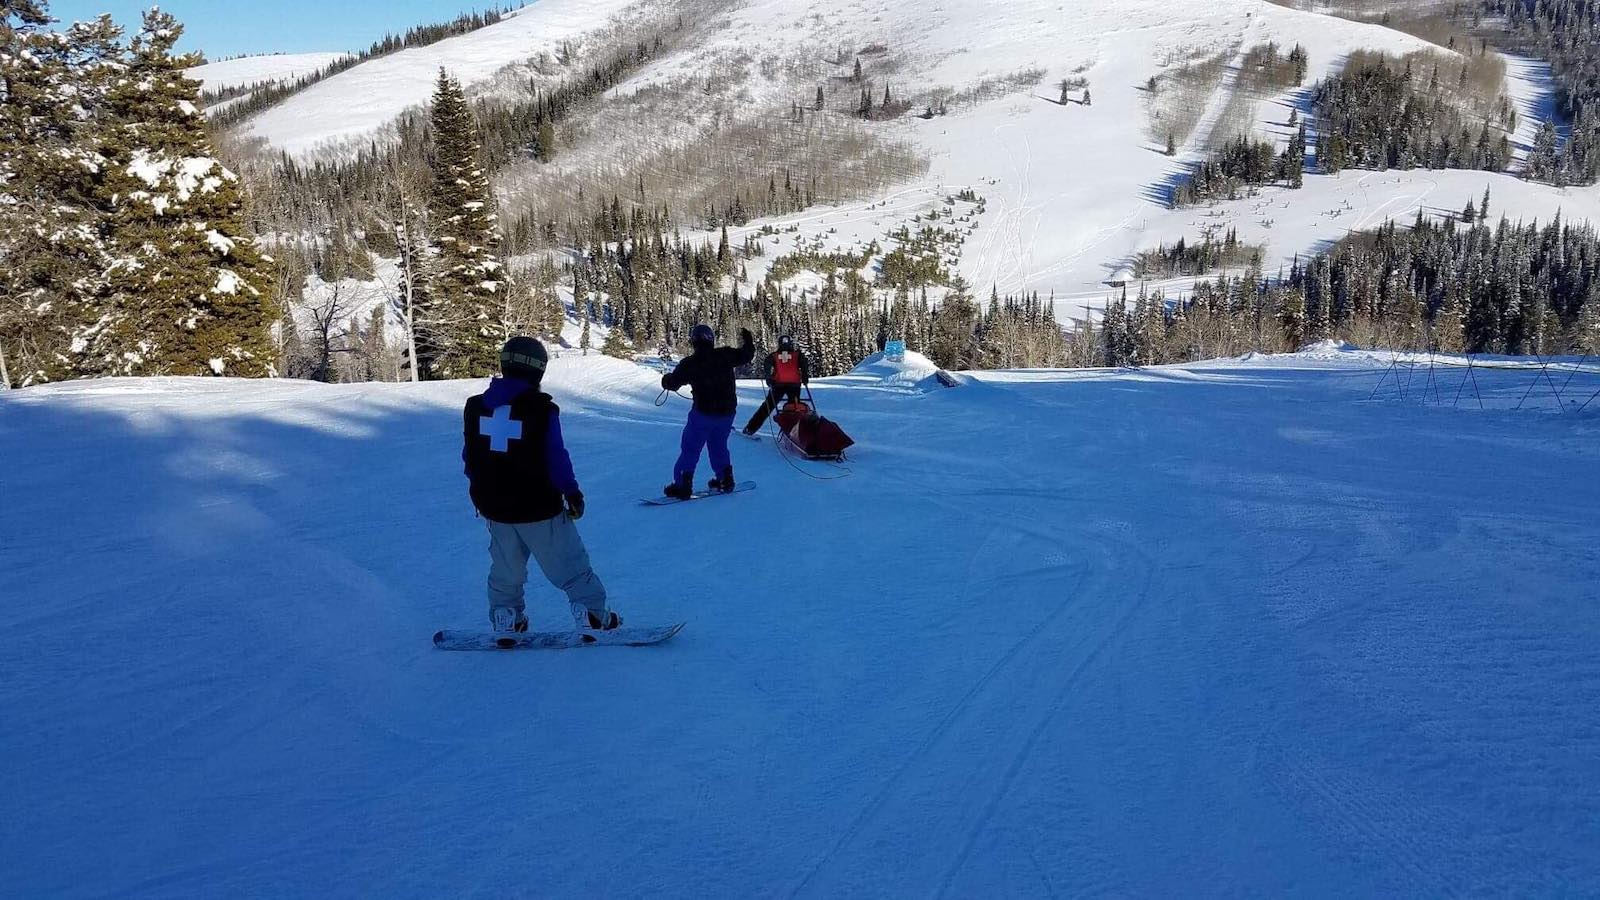 Image of ski patrol heading down the mountain at Magic Mountain Ski Resort in Idaho